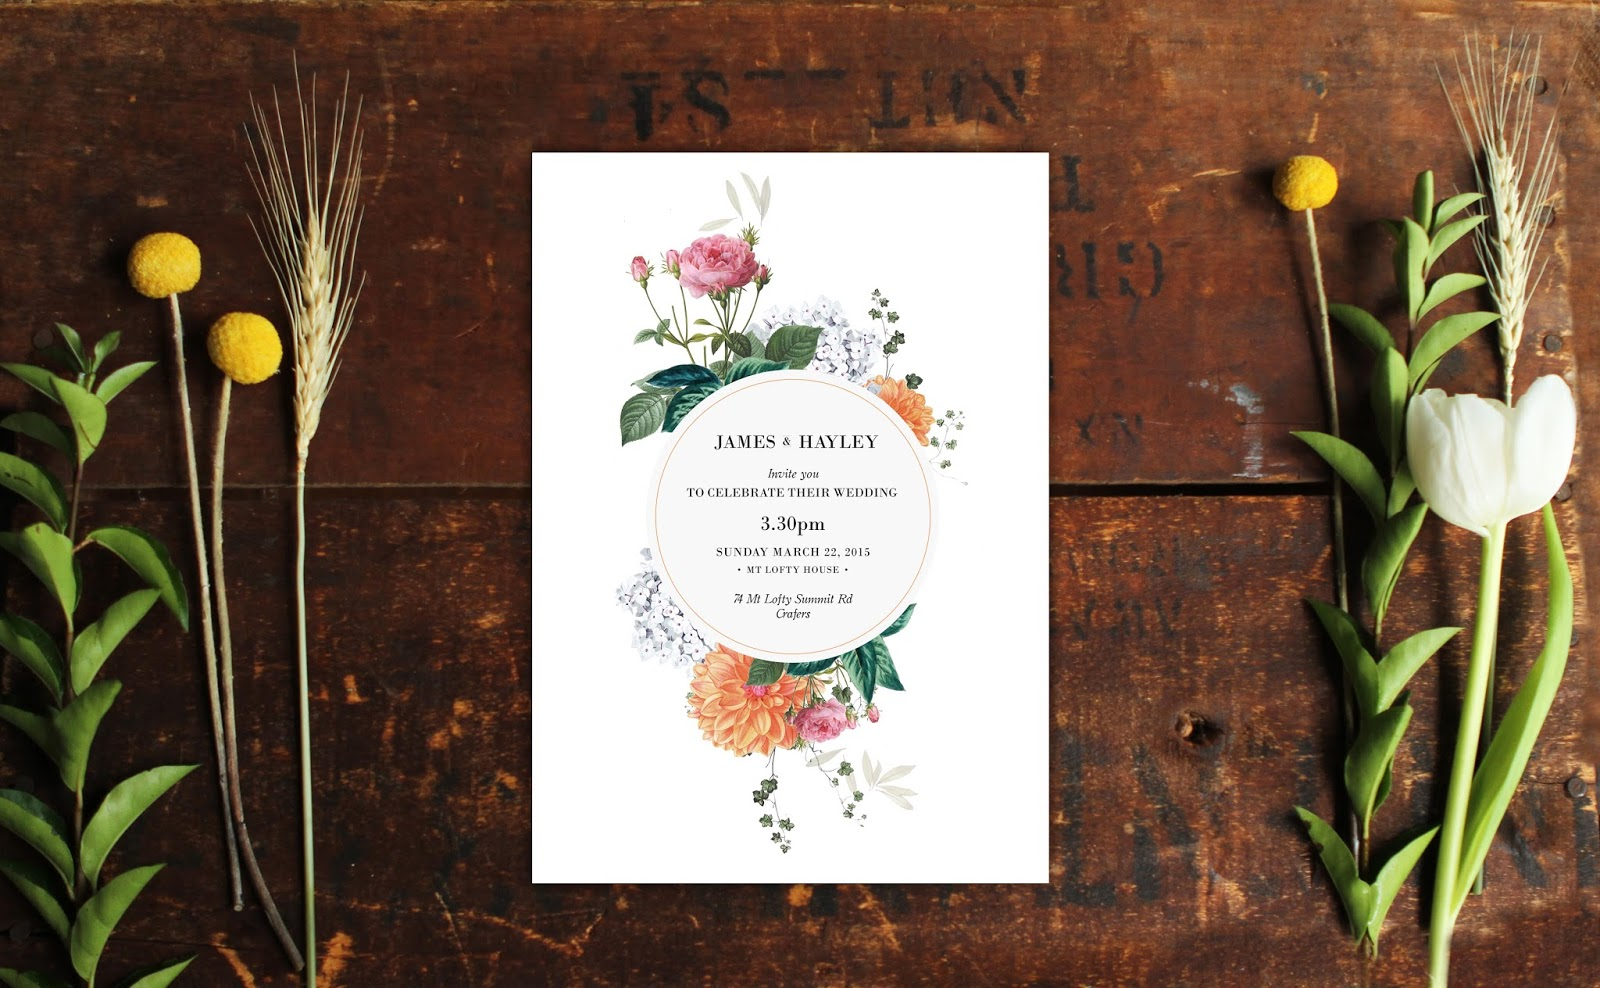 Botanical Wedding Invitations Wedding Decor Ideas